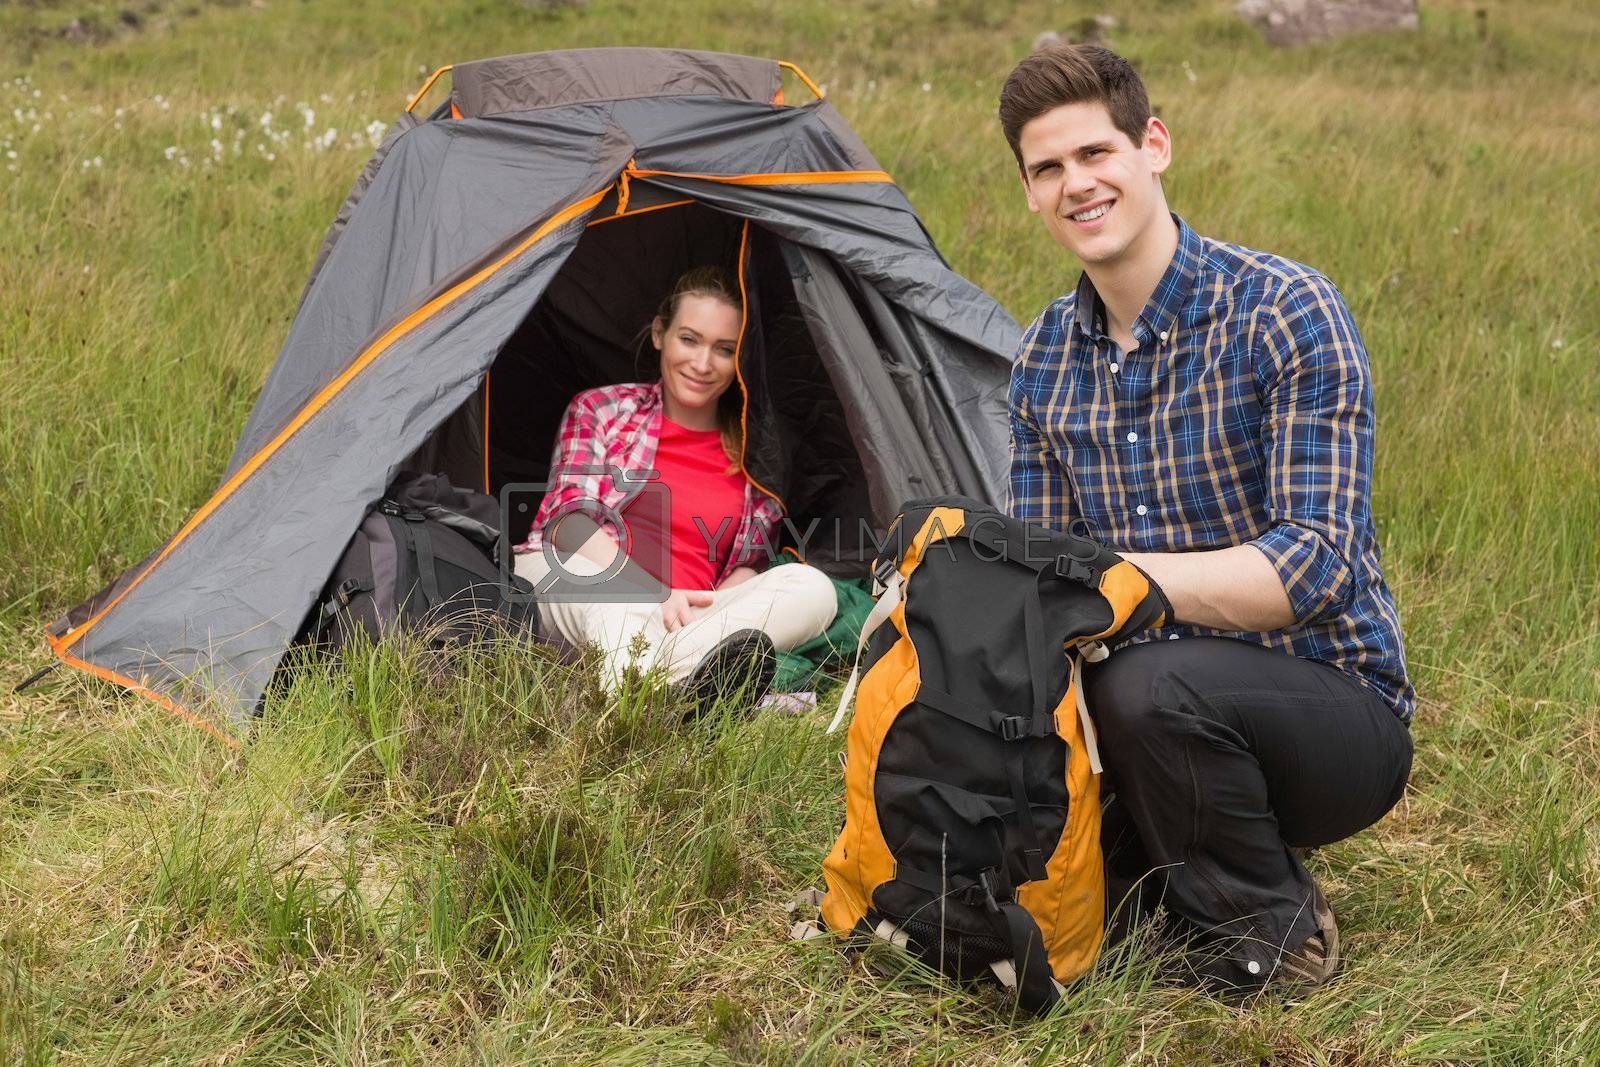 Smiling man packing backpack while girlfriend sits in tent by Wavebreakmedia